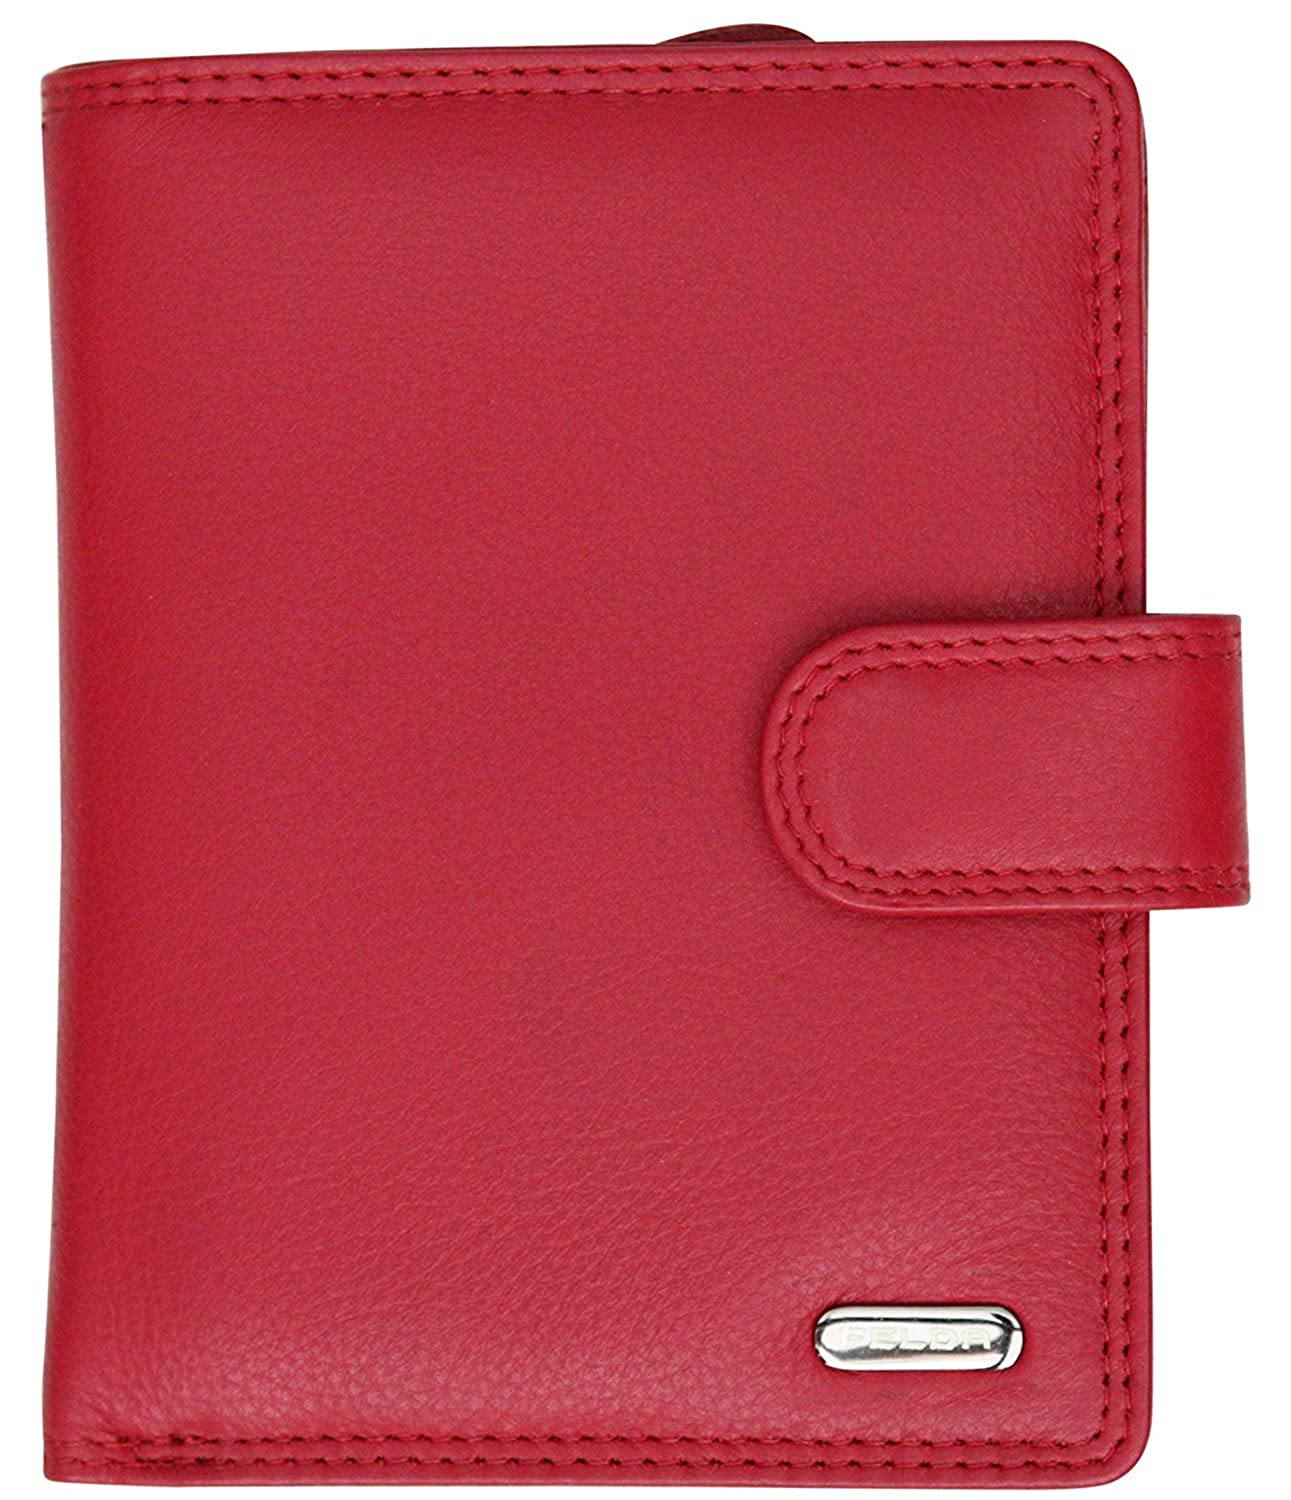 Felda Ladies Genuine Leather Medium Purse - RFID Protection and 9 Card Slots